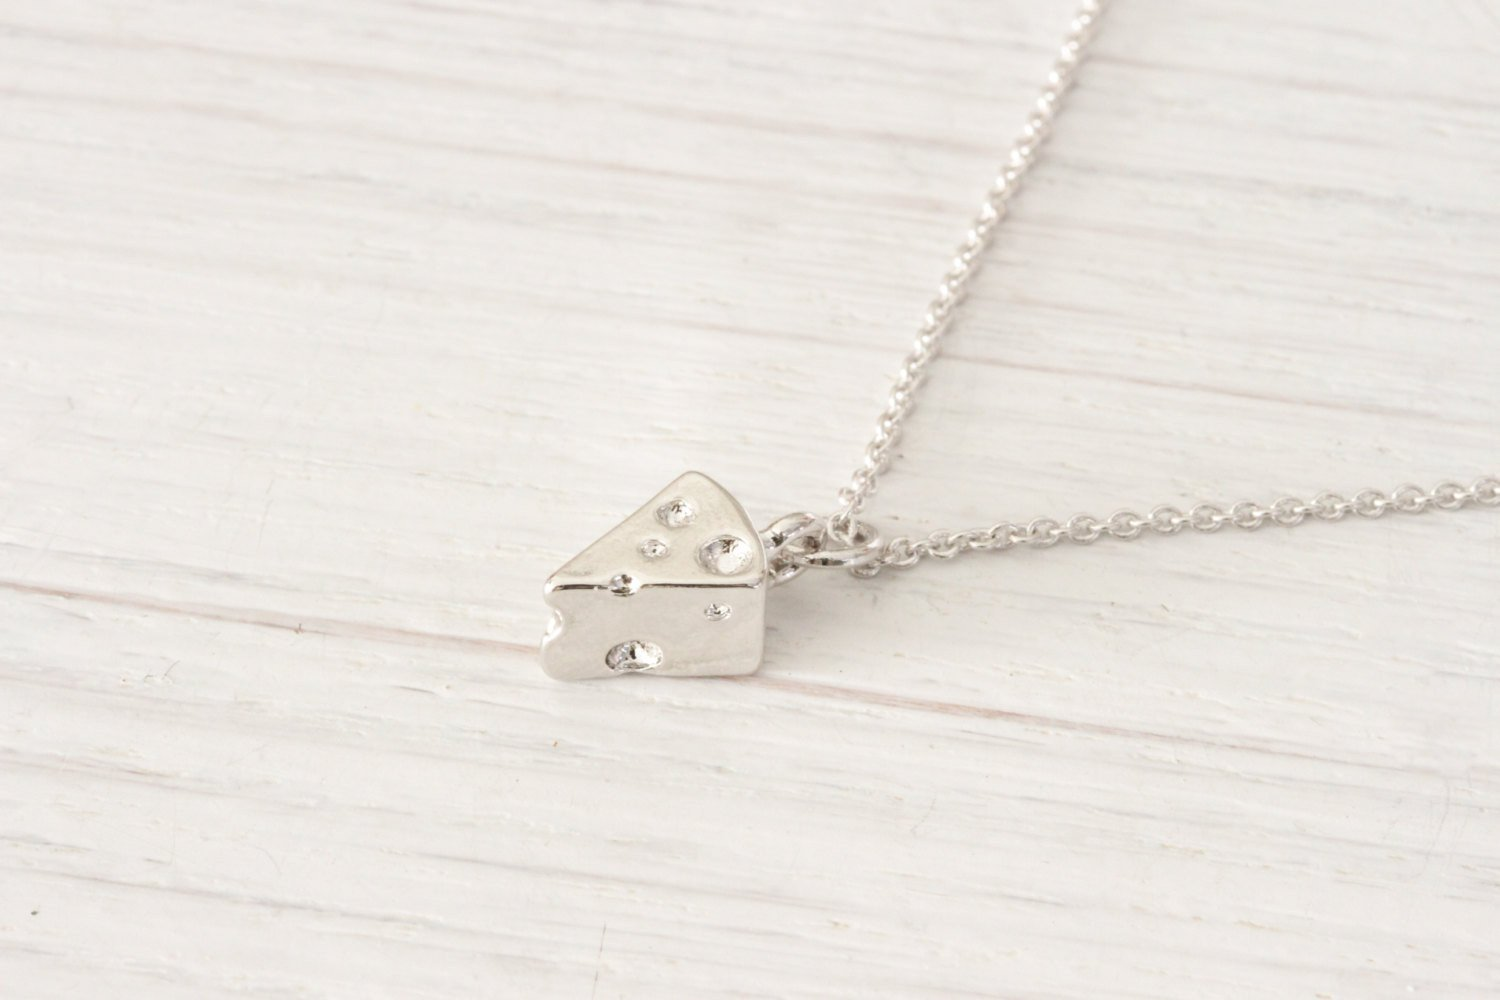 Tiny Silver Swiss Cheese Necklace, Food Jewelry Friendship Del Beautiz